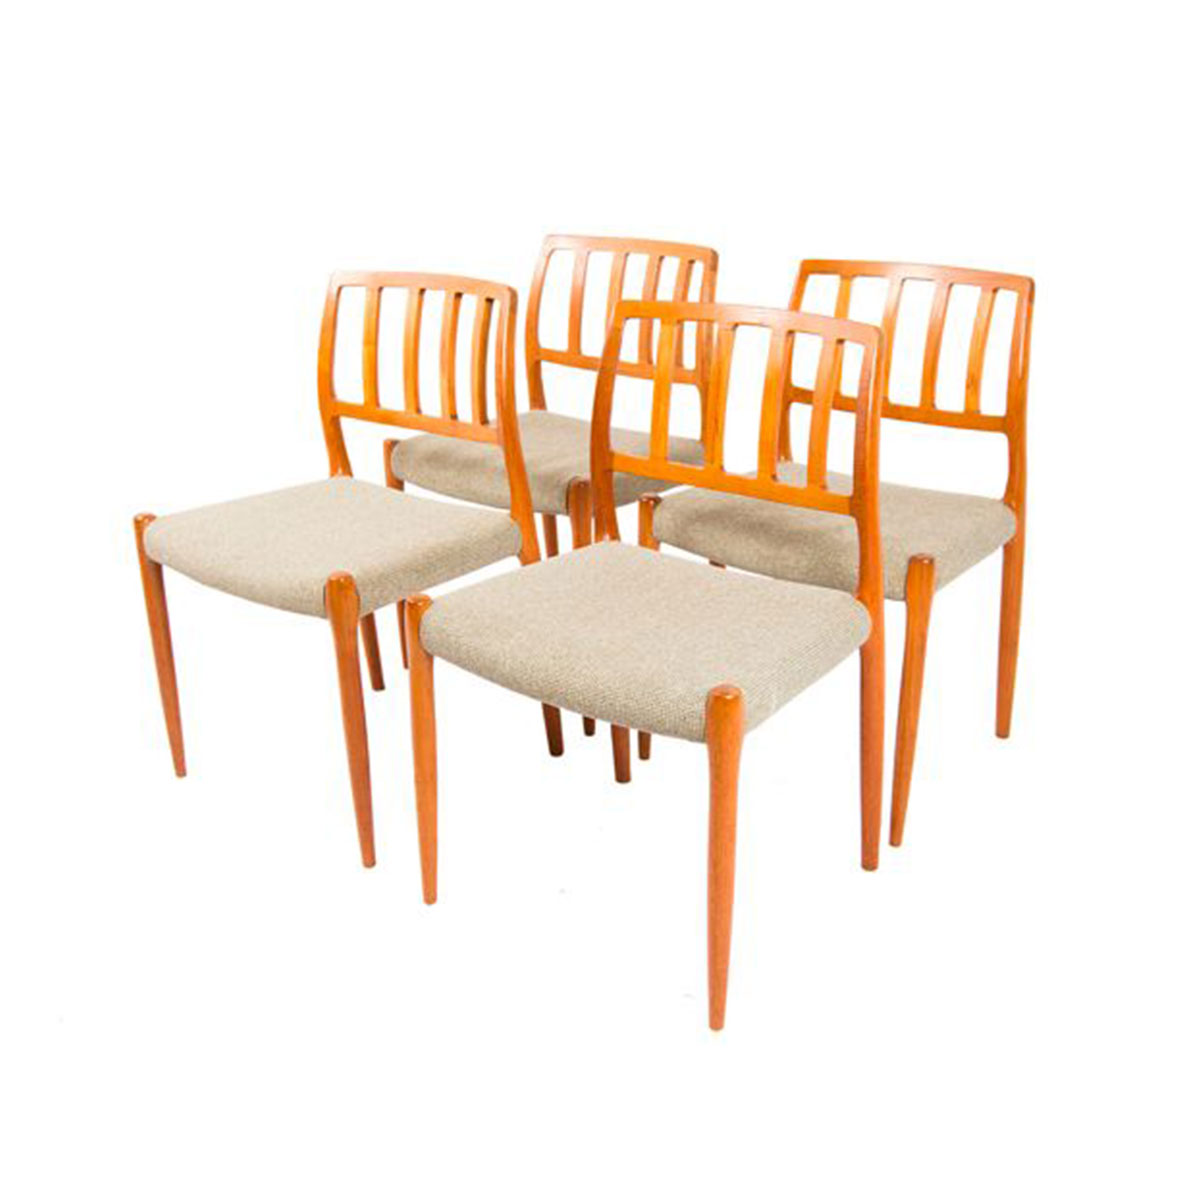 Set of 4 Designer Niels Møller Teak Dining Chairs